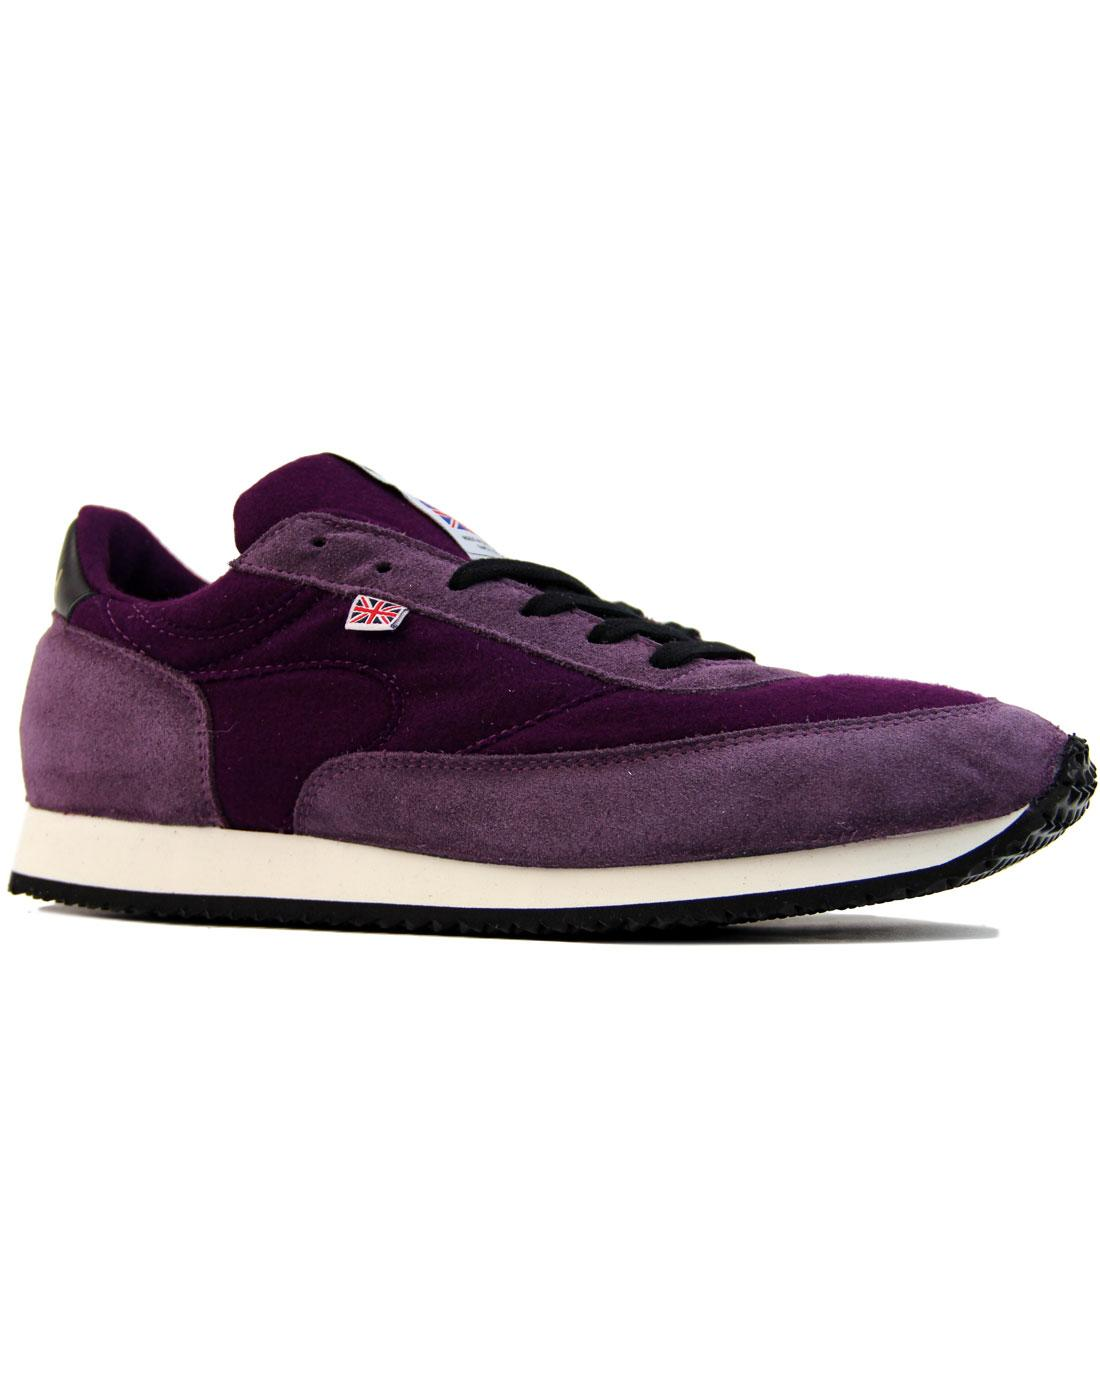 LA 84 Hainsworth WALSH Made in England Trainers